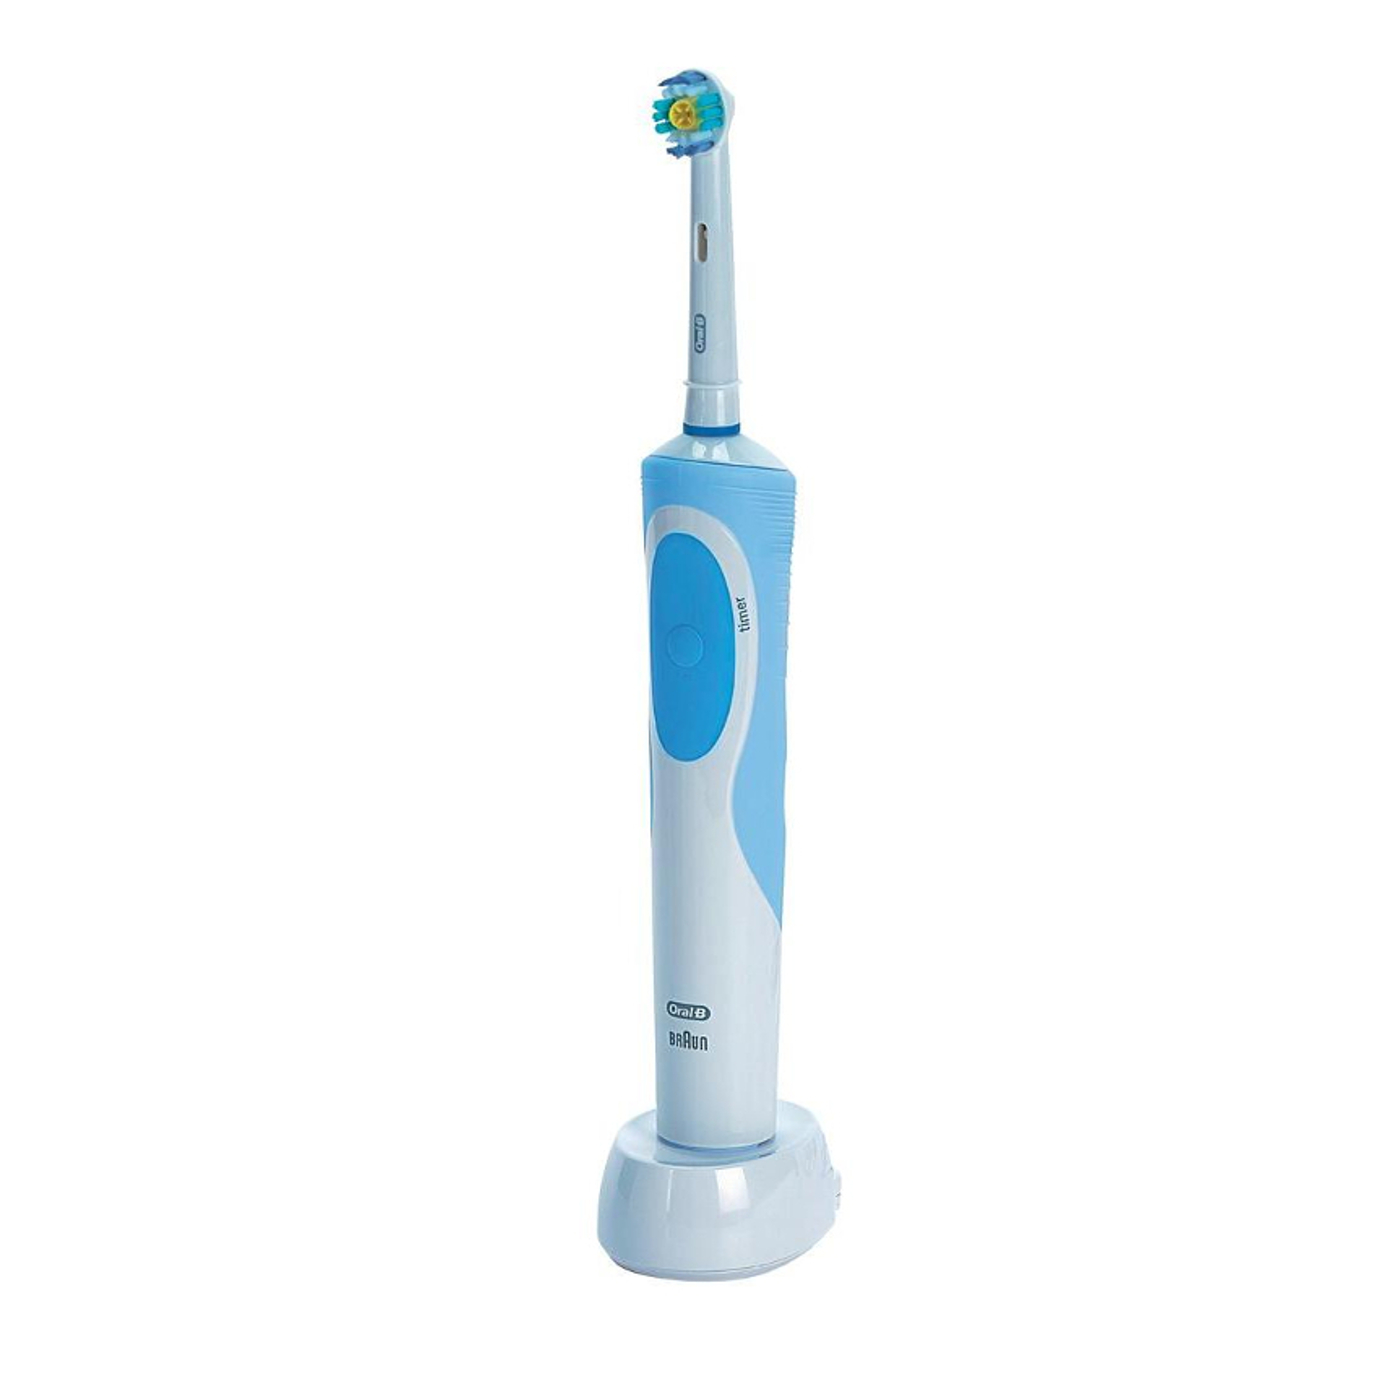 Find great deals on eBay for braun oral-b electric toothbrush. Shop with confidence.